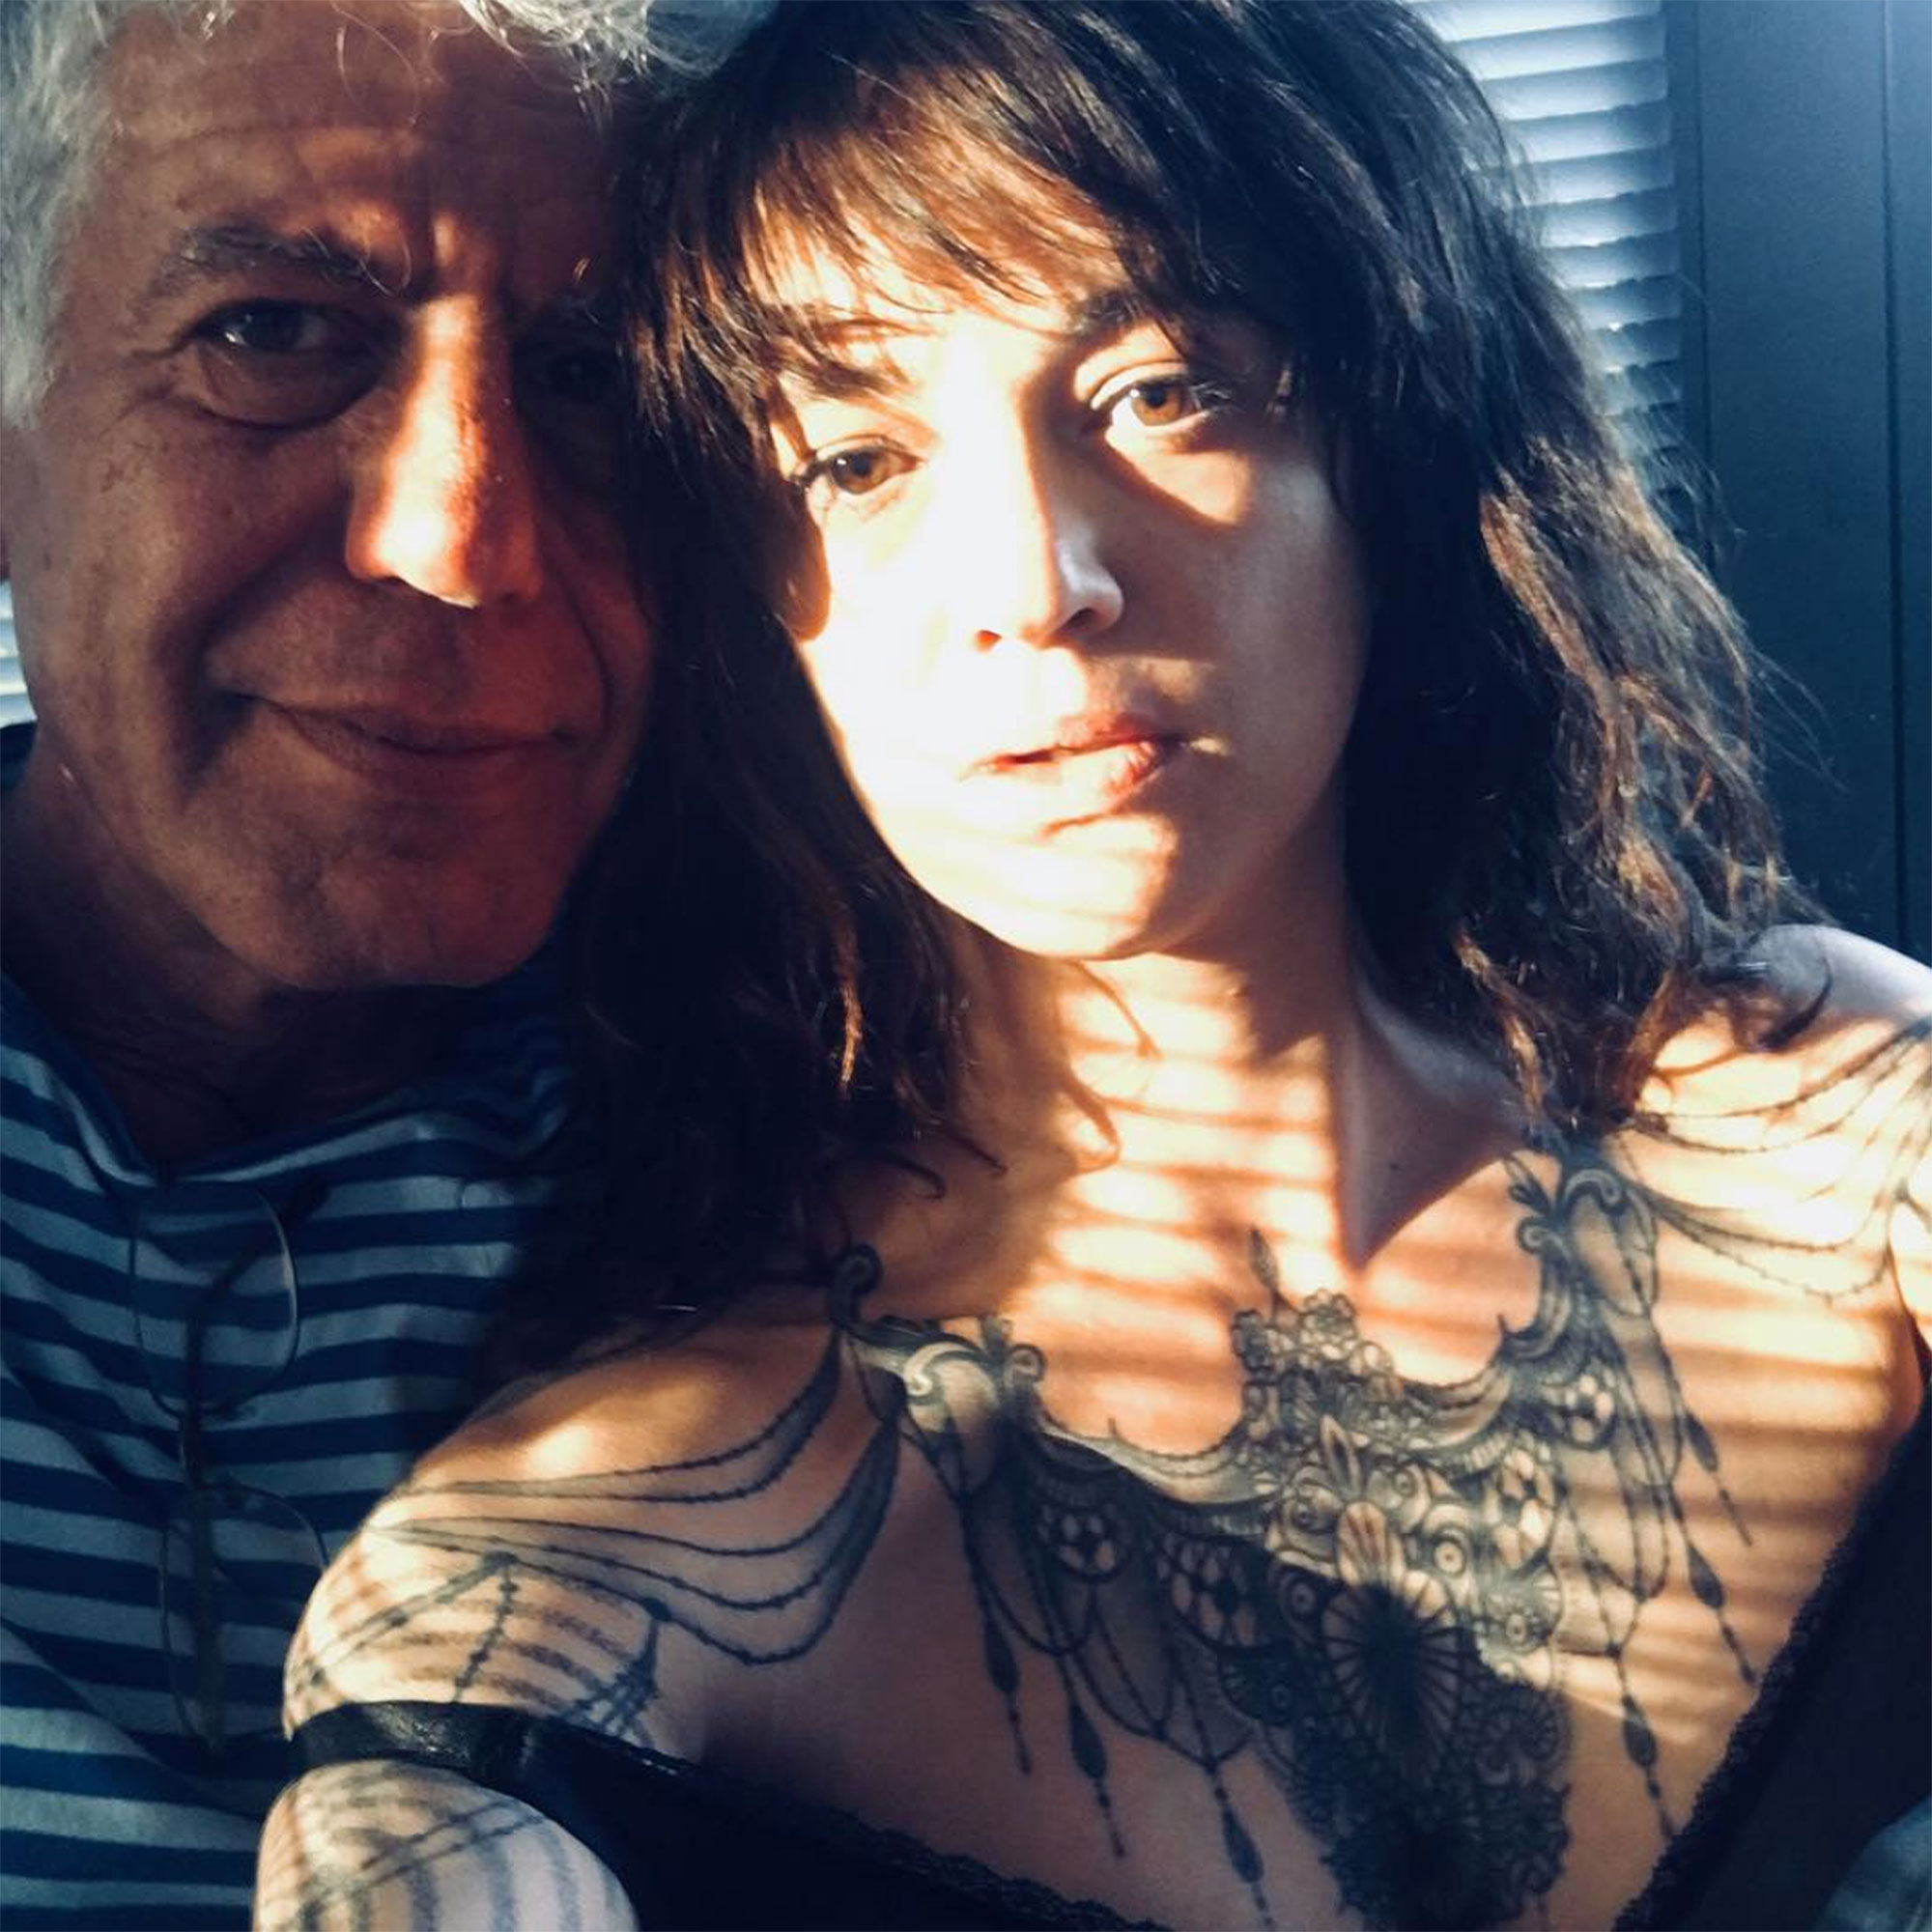 anthony-bourdain-asia-argento-2